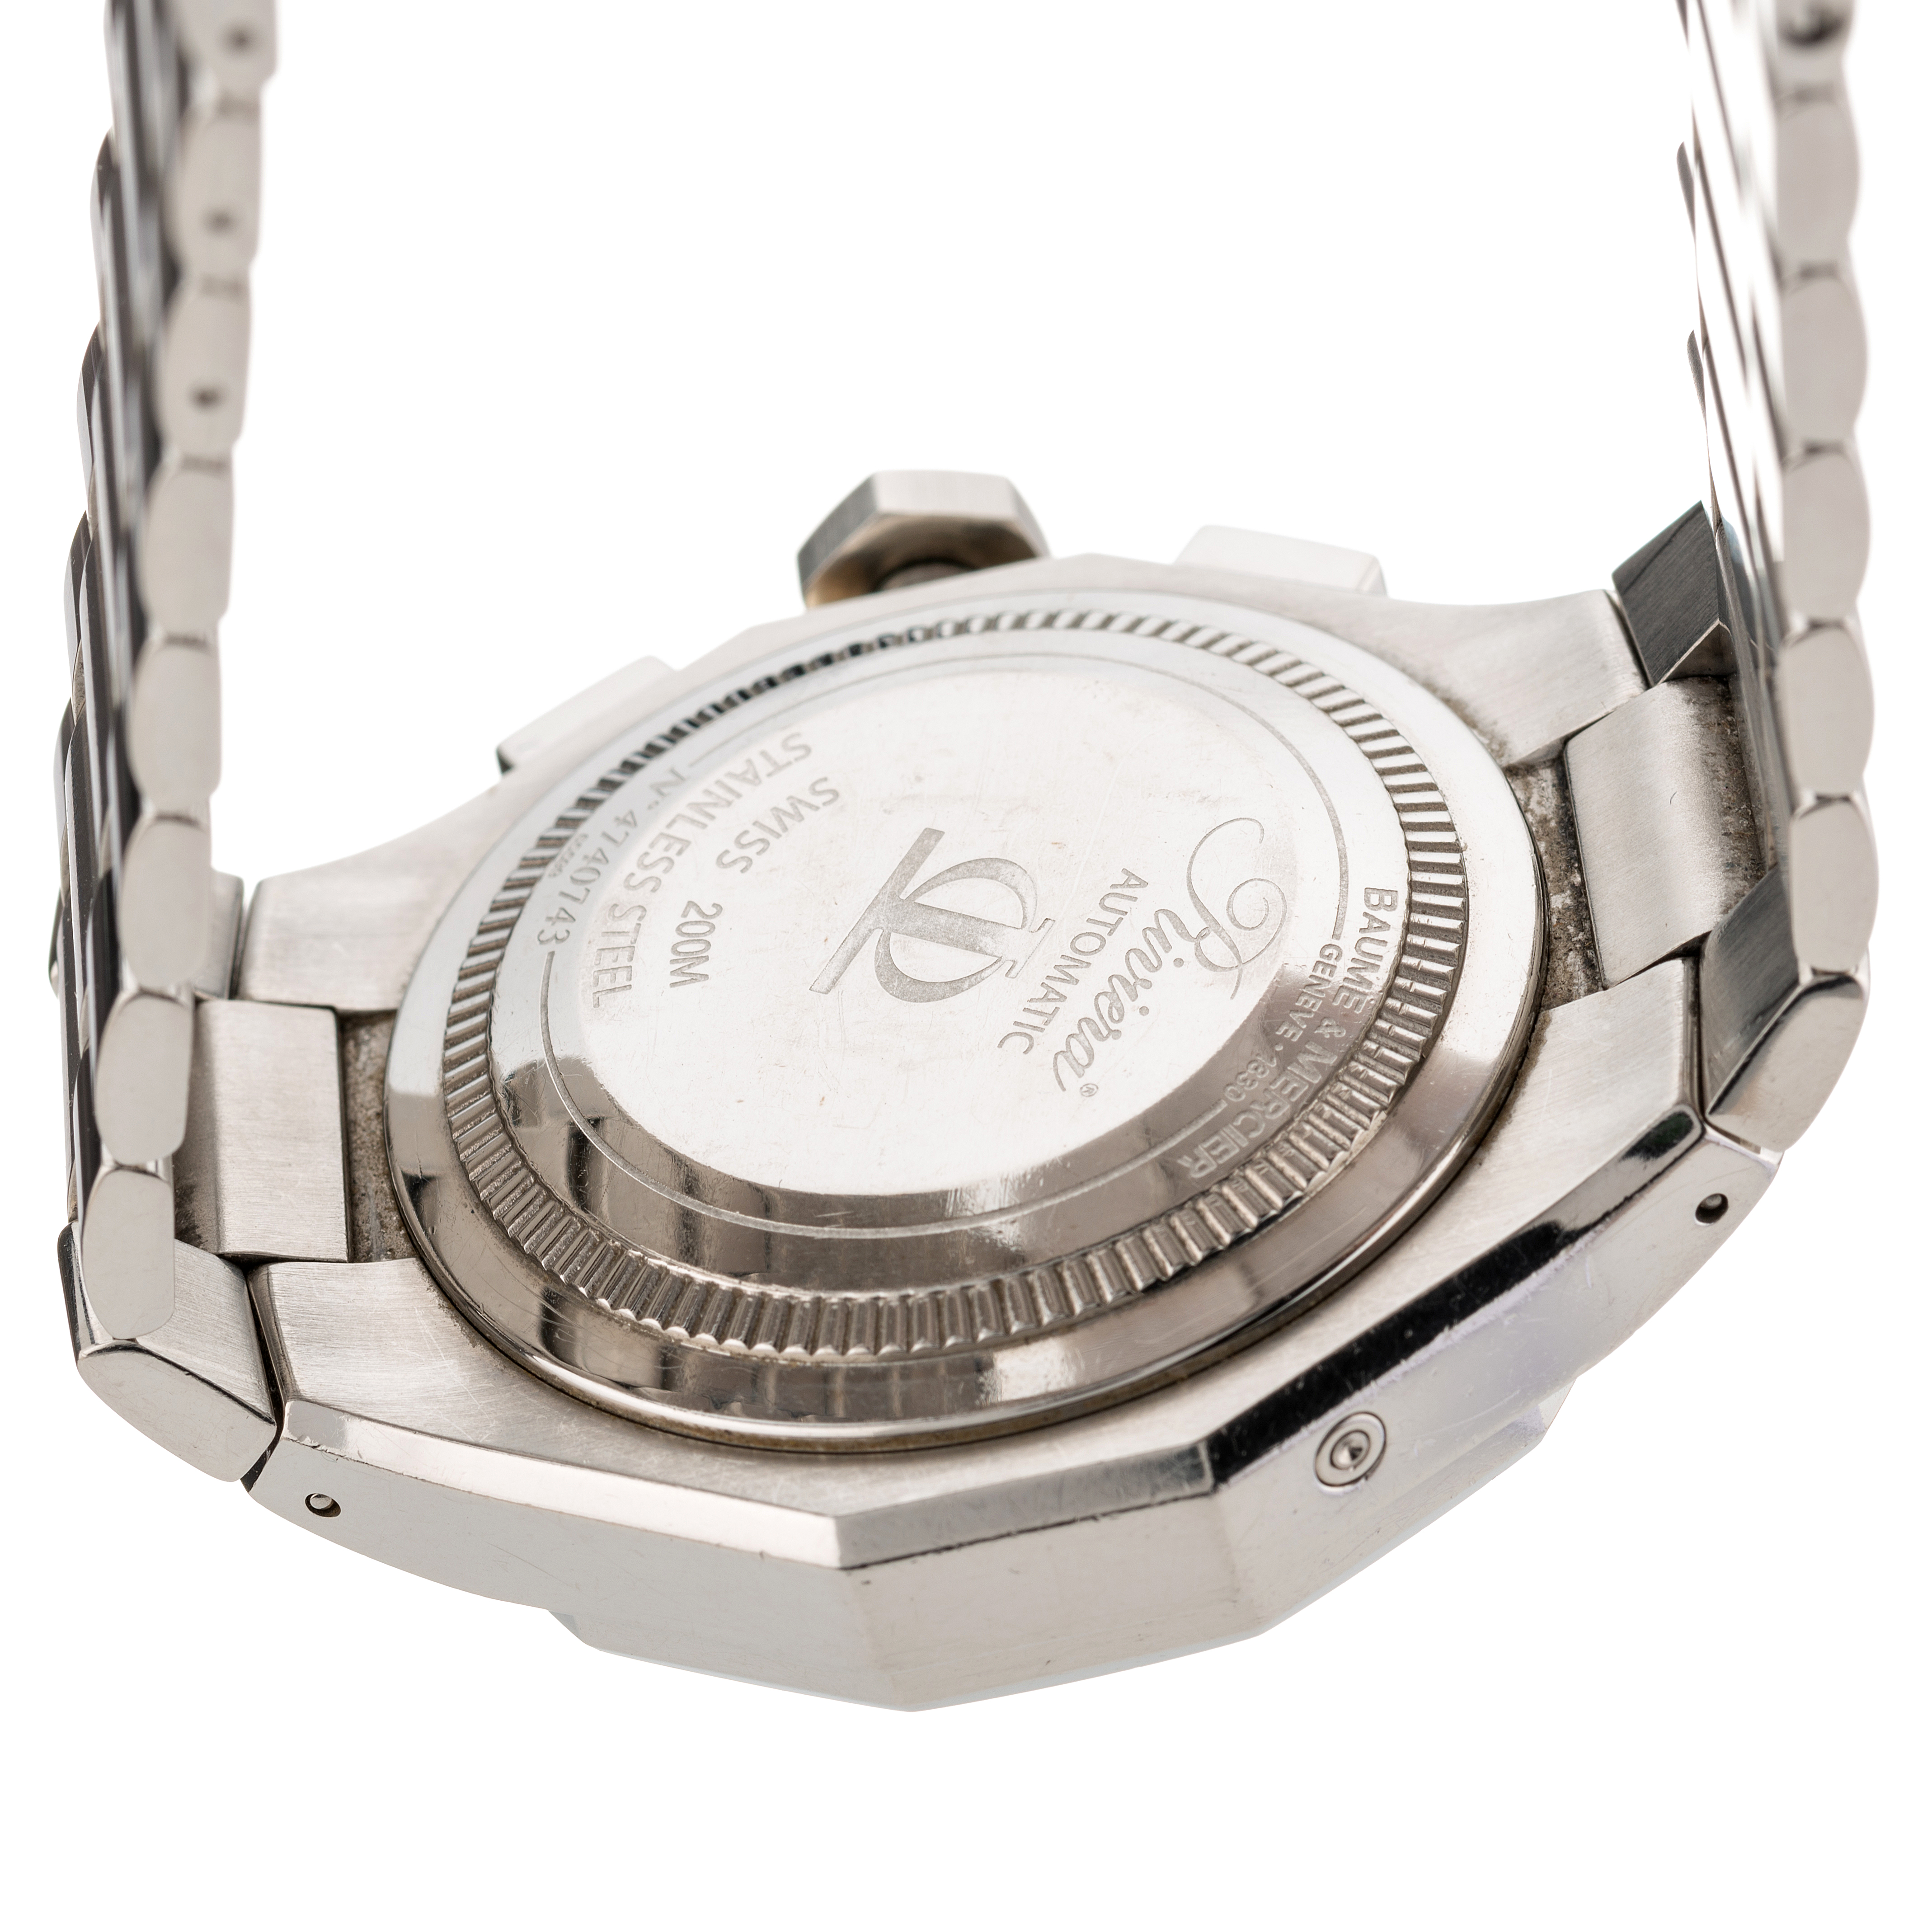 Baume & Mercier, a stainless steel Riviera automatic chronograph bracelet watch - Image 2 of 4